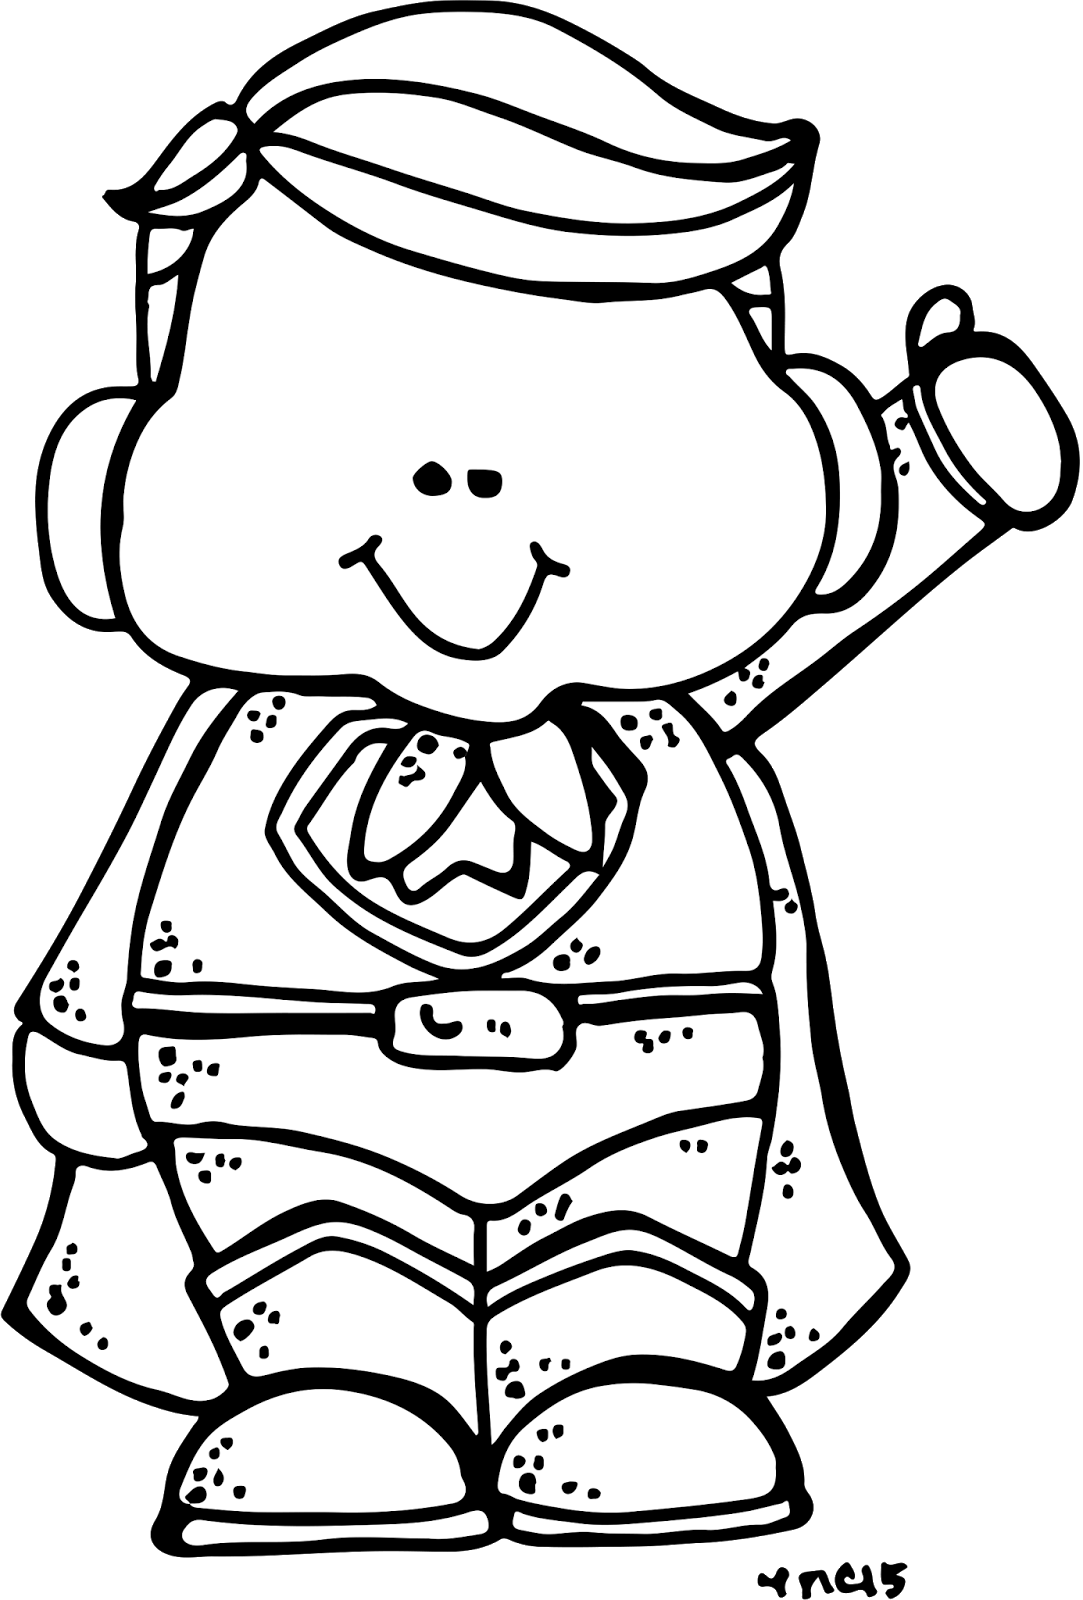 Super Hero Clipart Black And White 20 Free Cliparts